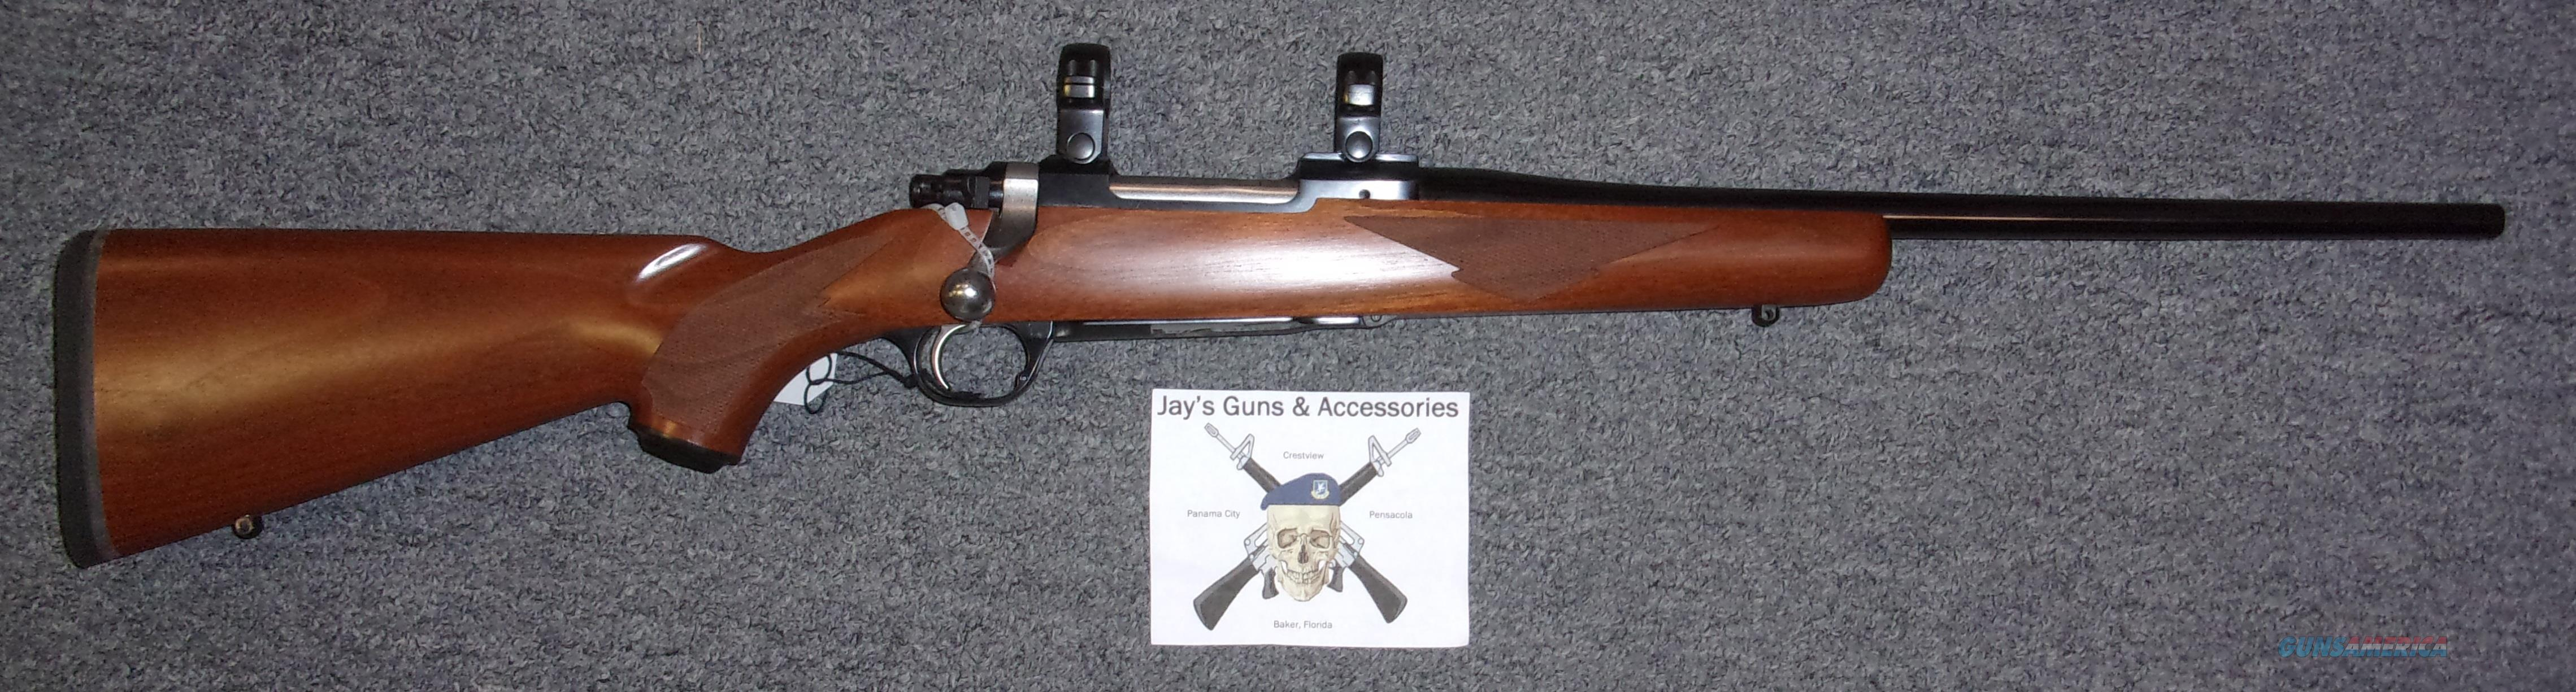 Ruger M77 Hawkeye Compact  Guns > Rifles > Ruger Rifles > Model 77